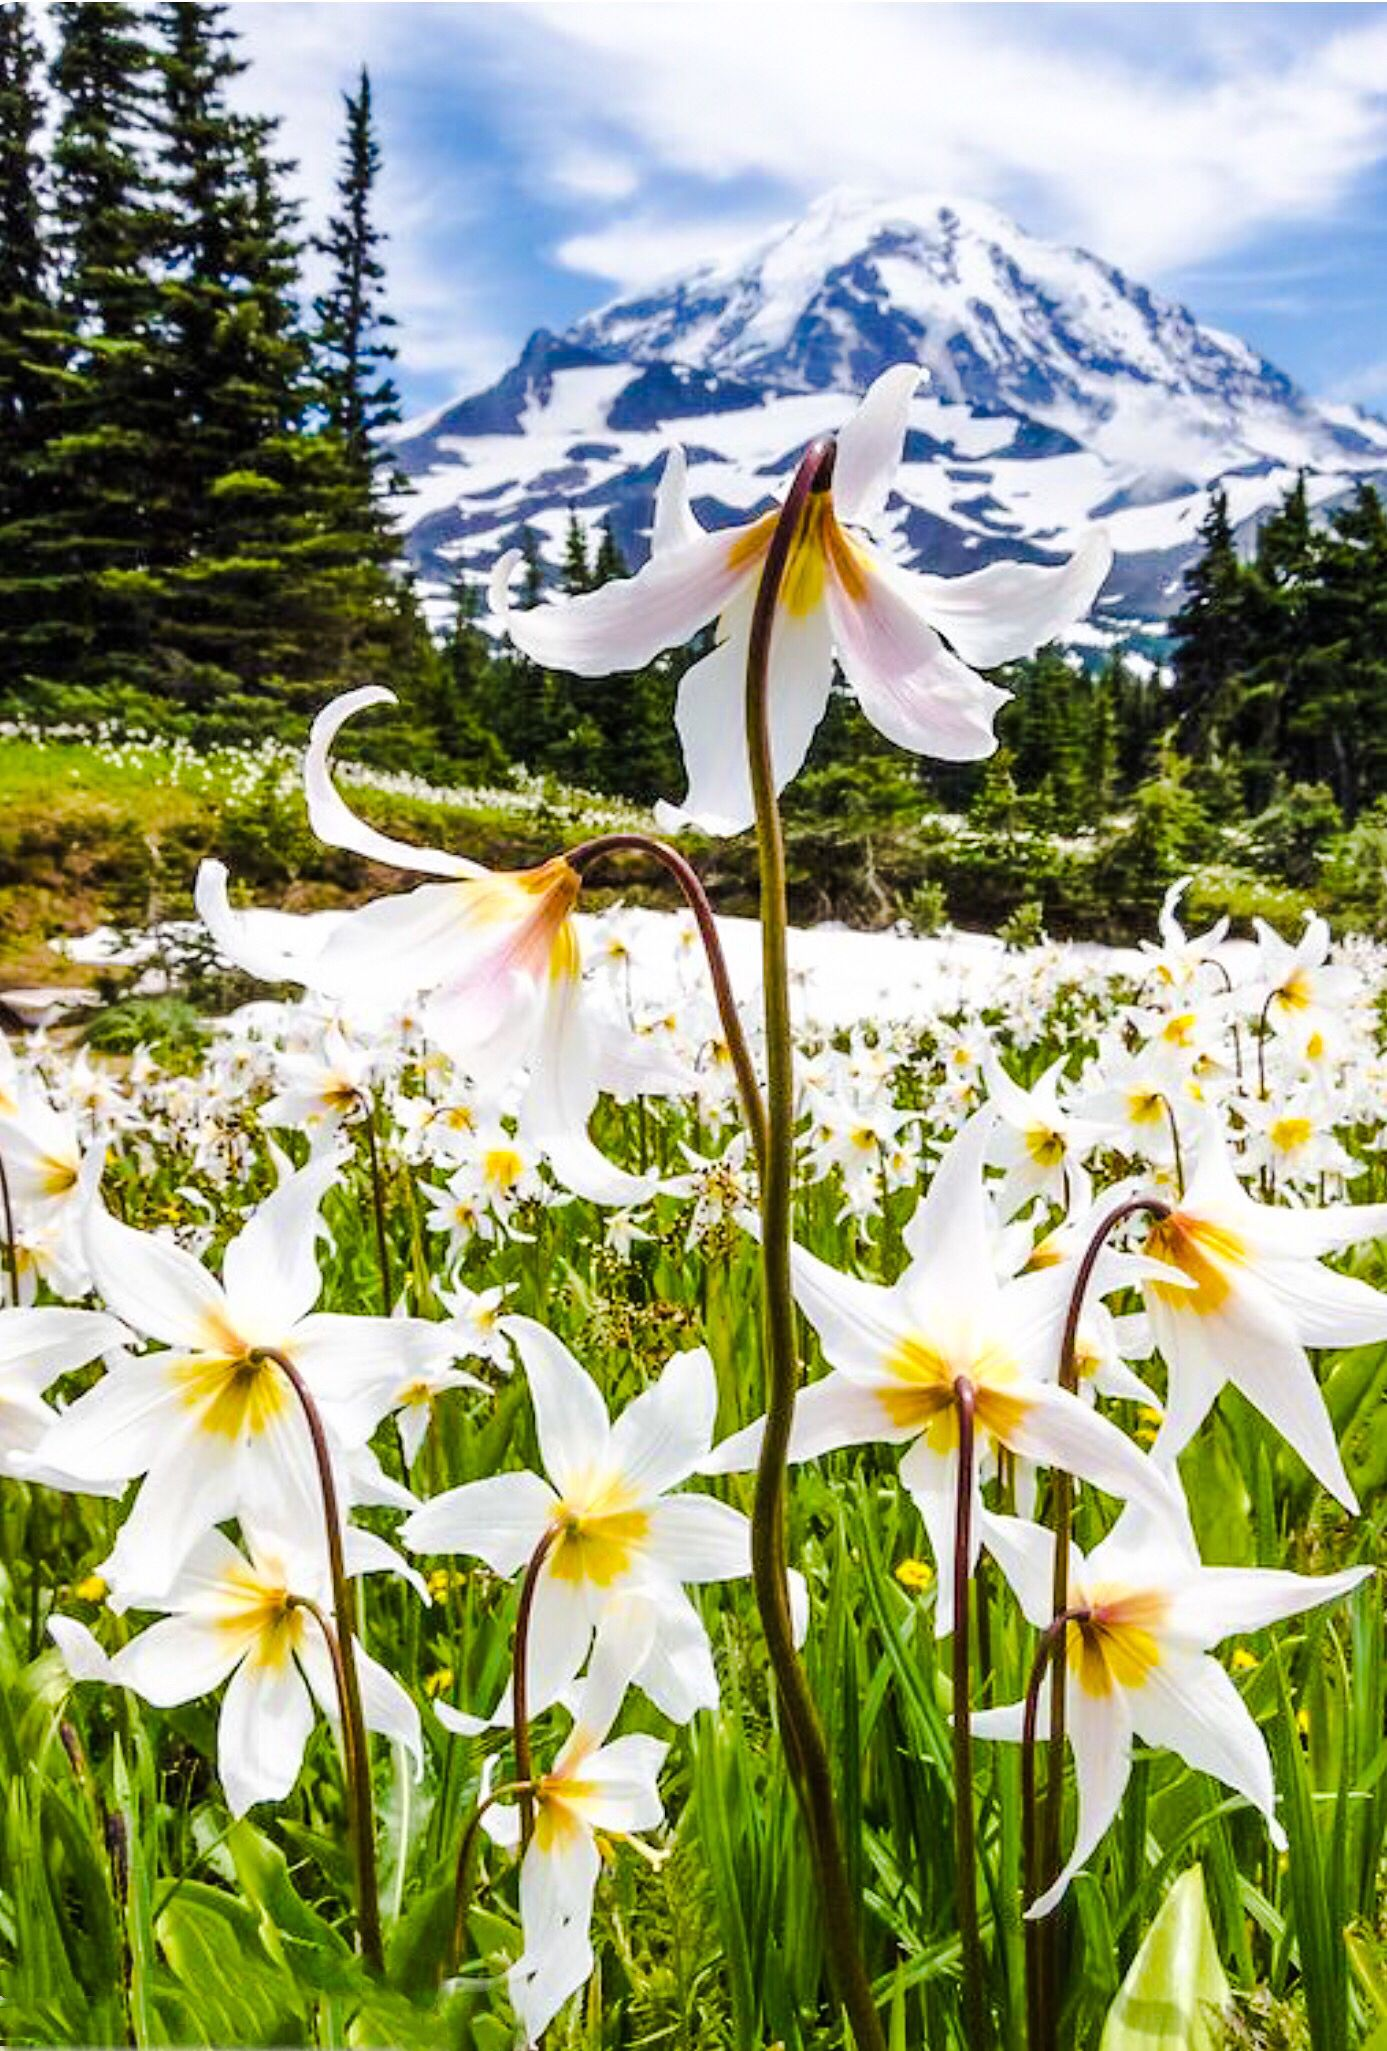 Fields Of White Avalanche Lilies Along The Trail In Spray Park